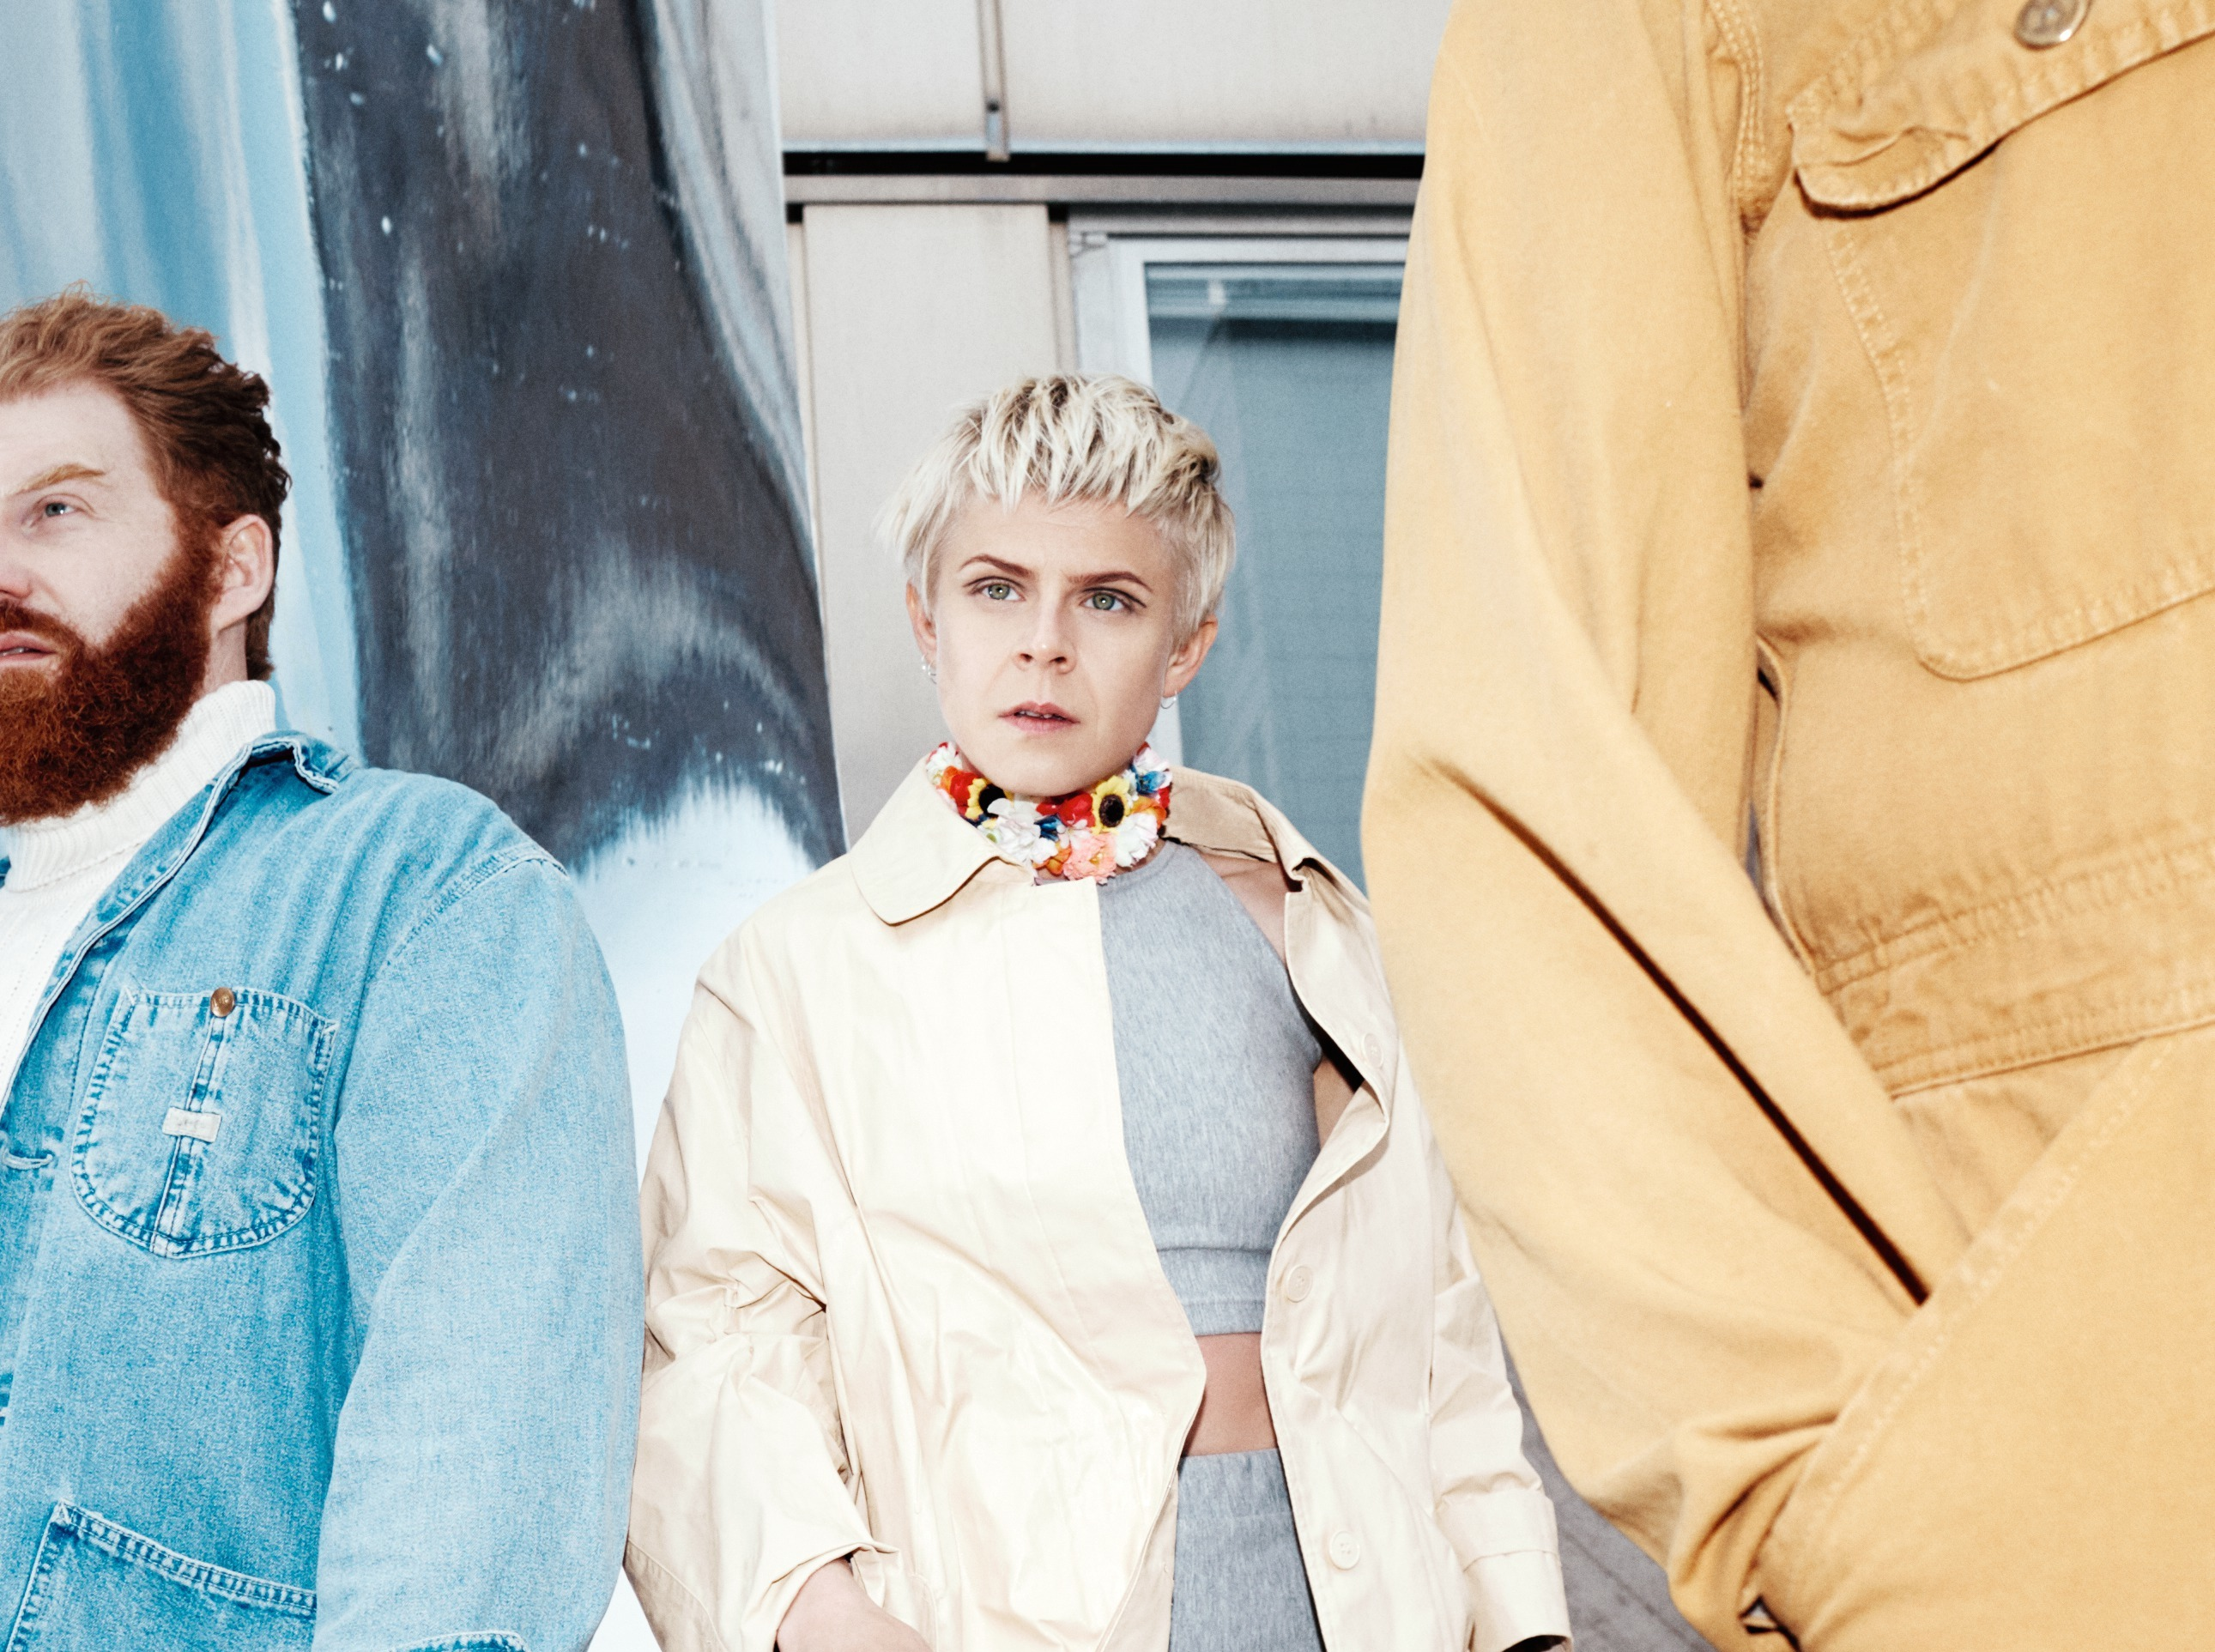 Robyn and La Bagatelle Magique share new track 'Set Me Free'